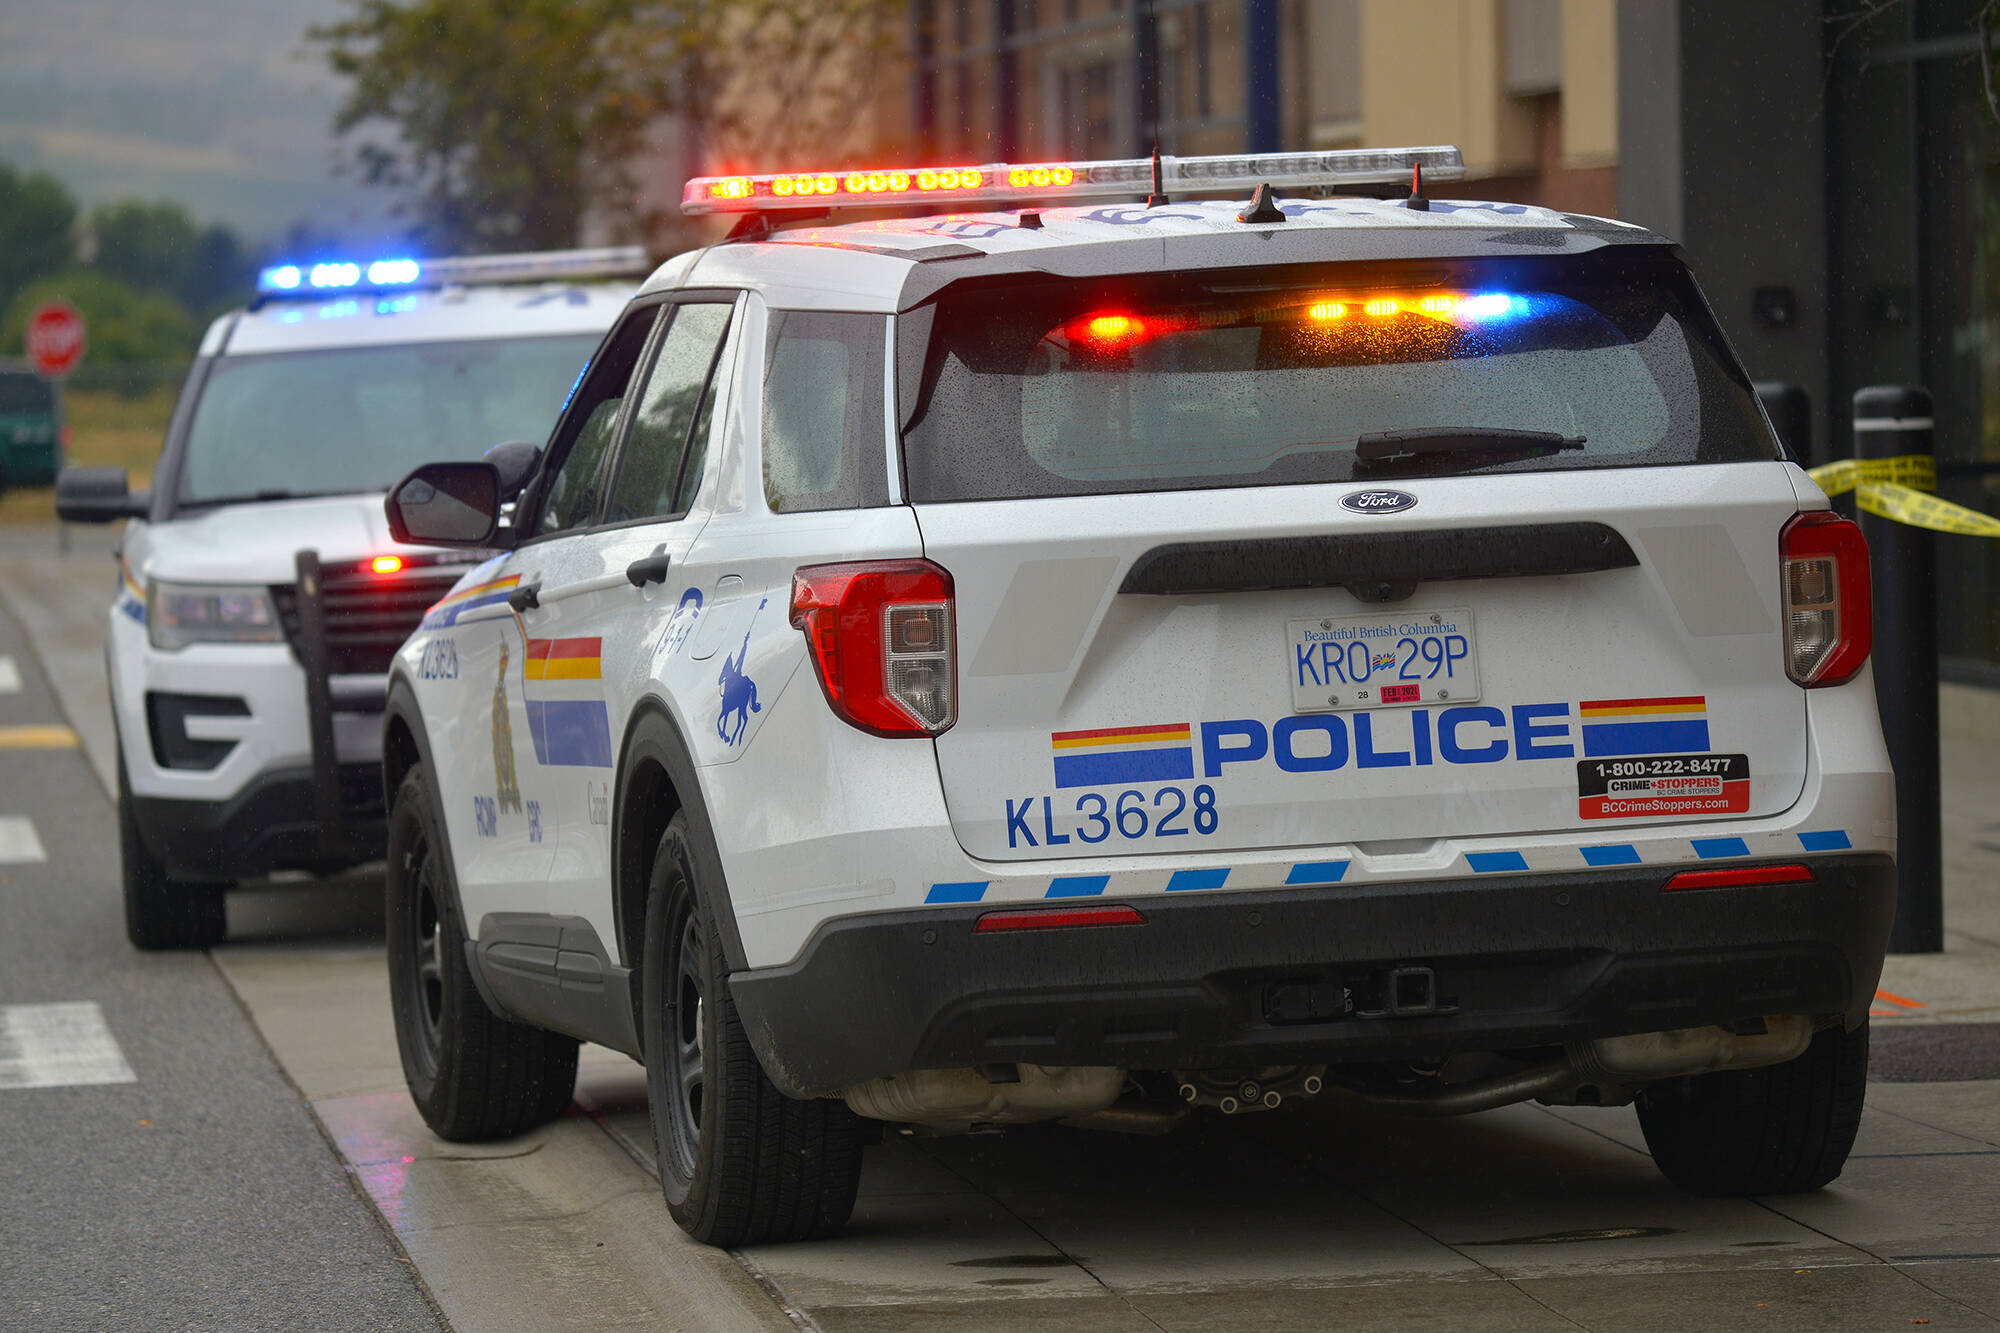 The IIO is investigating after a police dog bit a man during a traffic stop near Ladysmith on April 17, 2021. (Black Press Media stock photo)